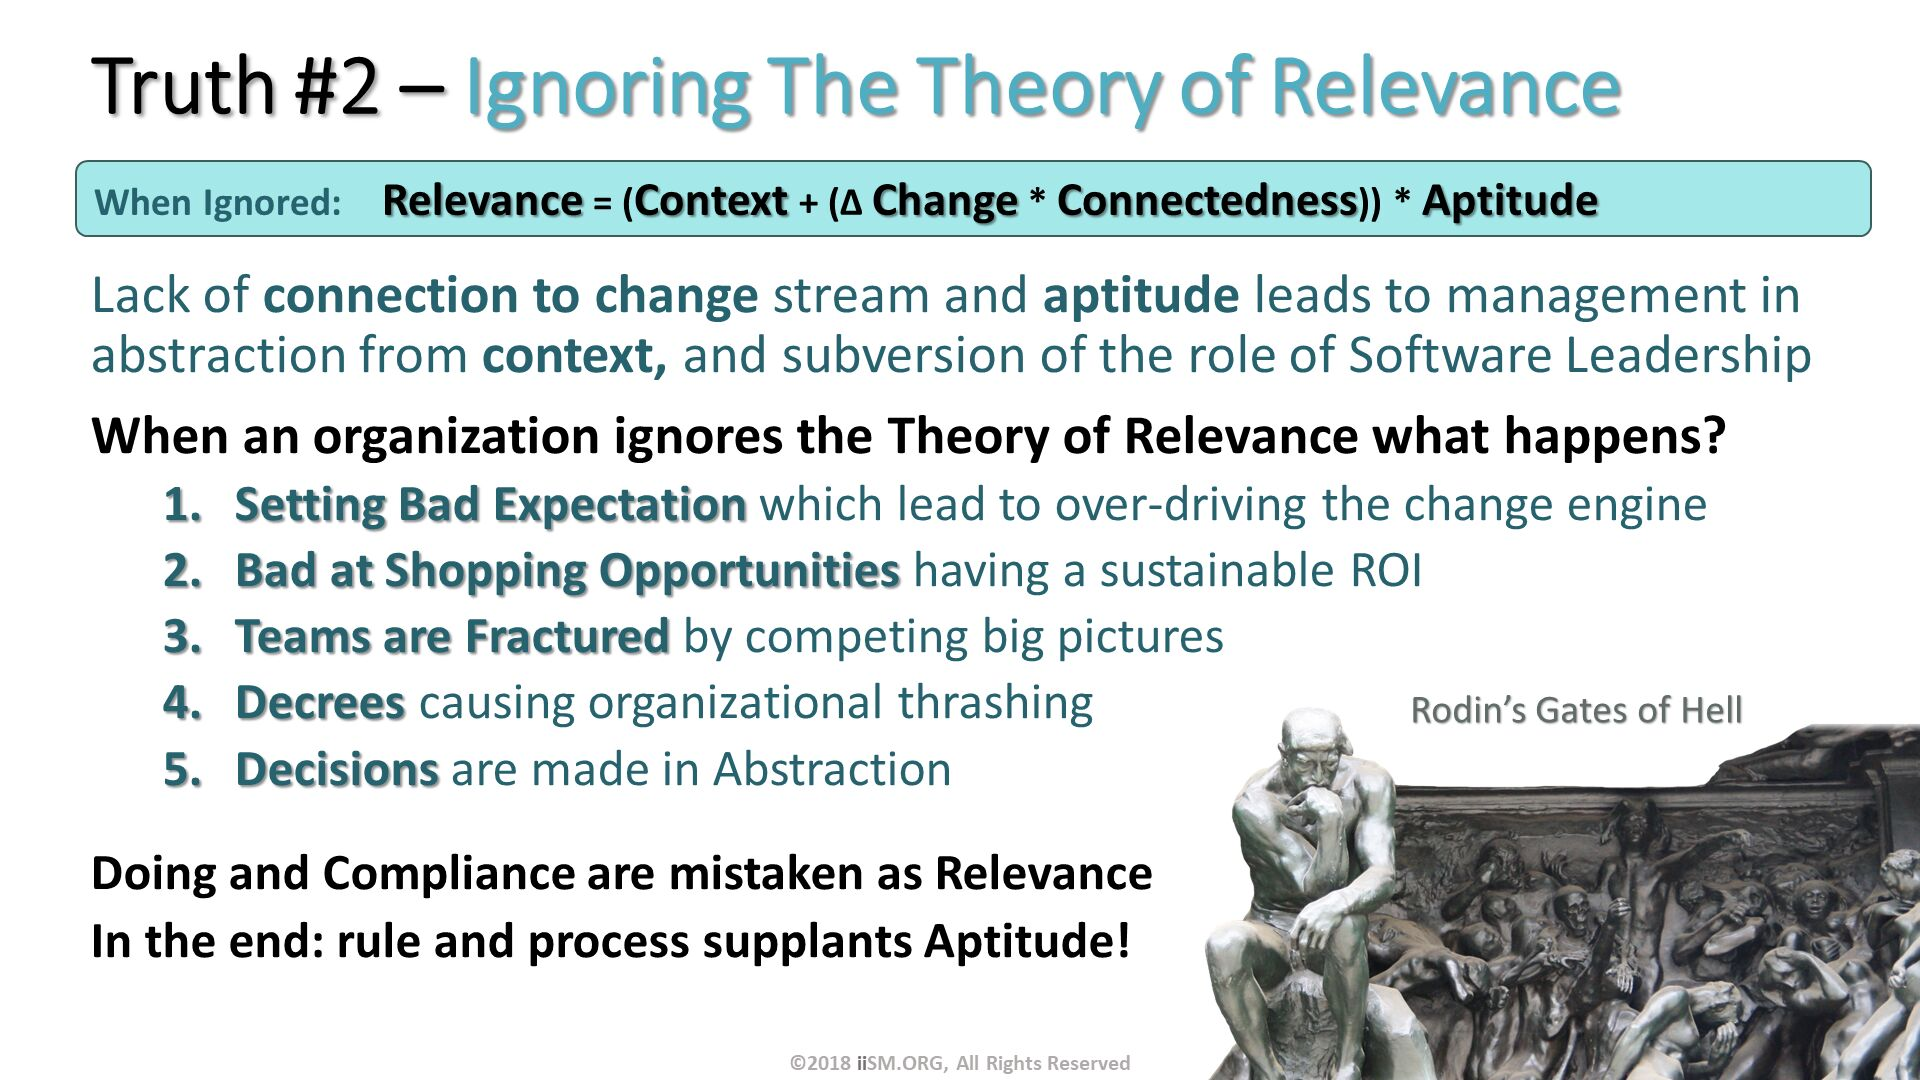 Truth #2 – Ignoring The Theory of Relevance . Lack of connection to change stream and aptitude leads to management in abstraction from context, and subversion of the role of Software Leadership When an organization ignores the Theory of Relevance what happens? Setting Bad Expectation which lead to over-driving the change engine Bad at Shopping Opportunities having a sustainable ROI Teams are Fractured by competing big pictures Decrees causing organizational thrashing Decisions are made in Abstraction Doing and Compliance are mistaken as Relevance In the end: rule and process supplants Aptitude! . When Ignored:	Relevance = (Context + (∆ Change * Connectedness)) * Aptitude . ©2018 iiSM.ORG, All Rights Reserved.